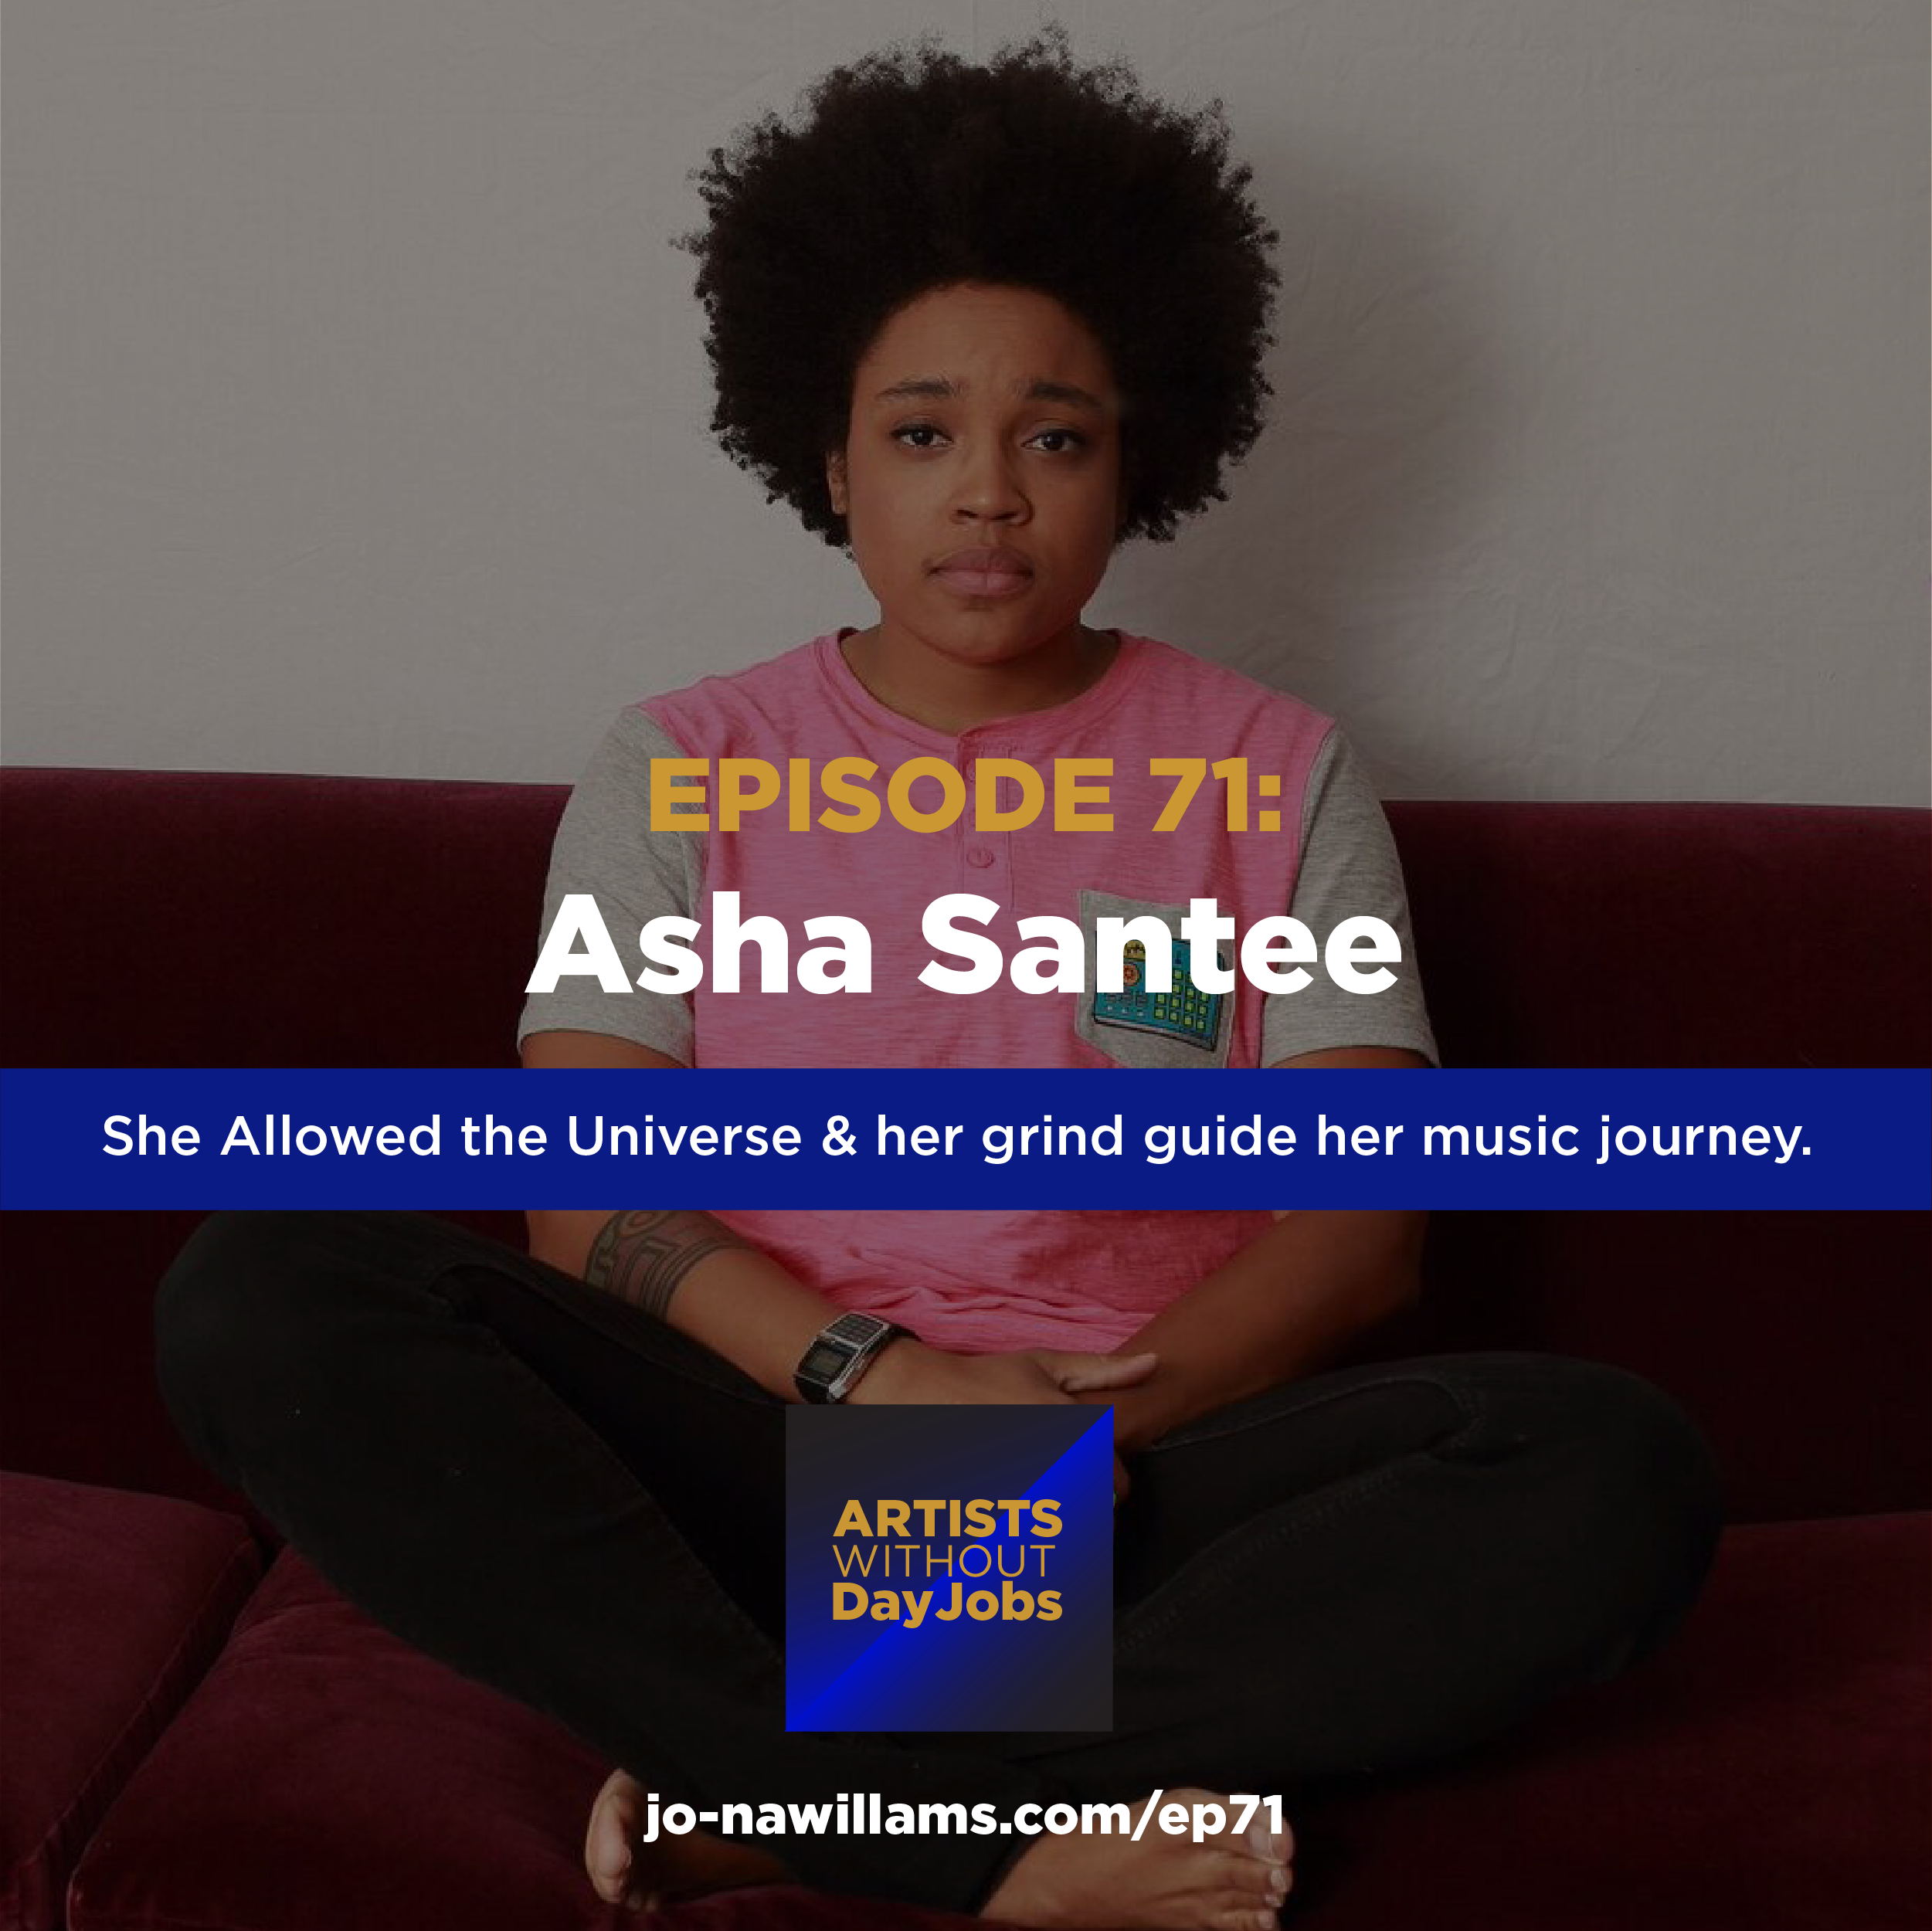 Ep 71: She Allowed the Universe & her grind guide her music journey w/ Asha Santee